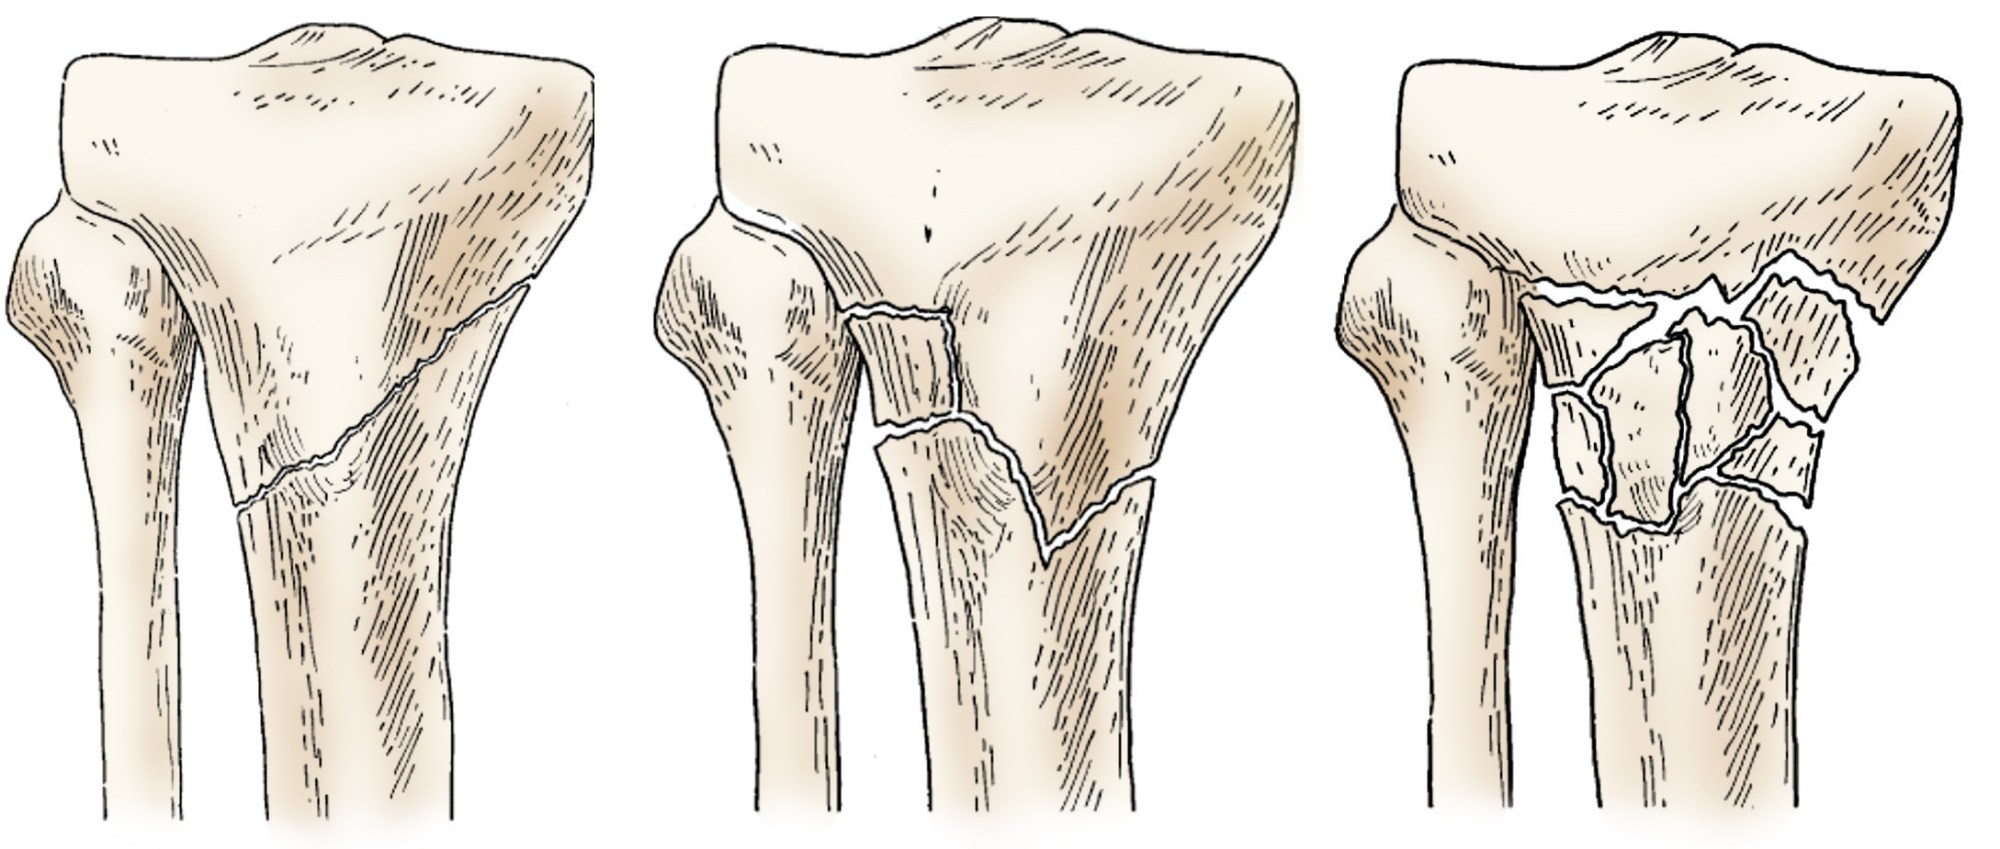 hight resolution of illustration of different proximal tibia fractures